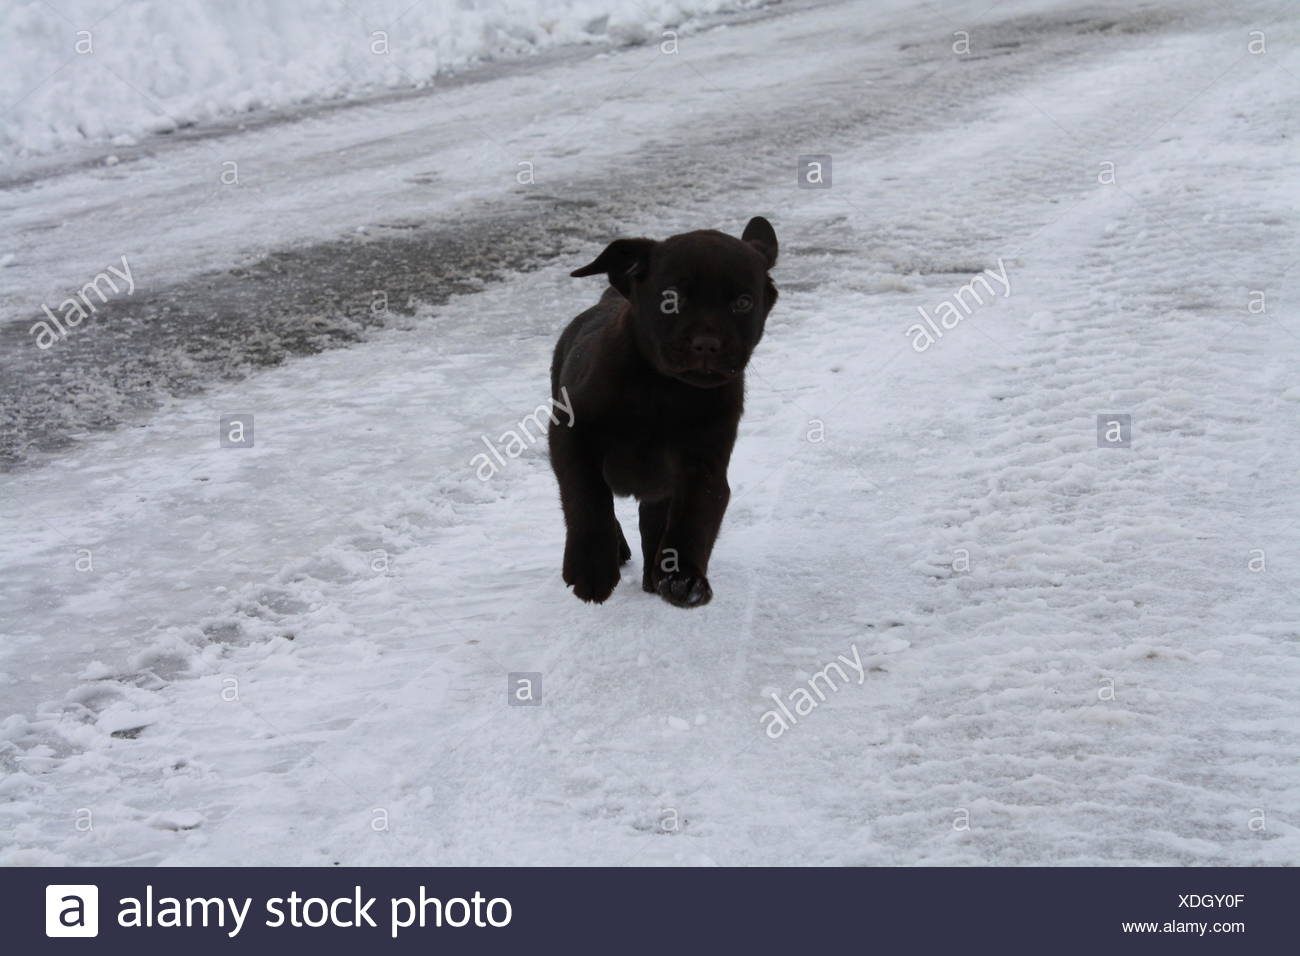 Active Cute Dog Running On A Rural Road Stock Photo 283728831 Alamy